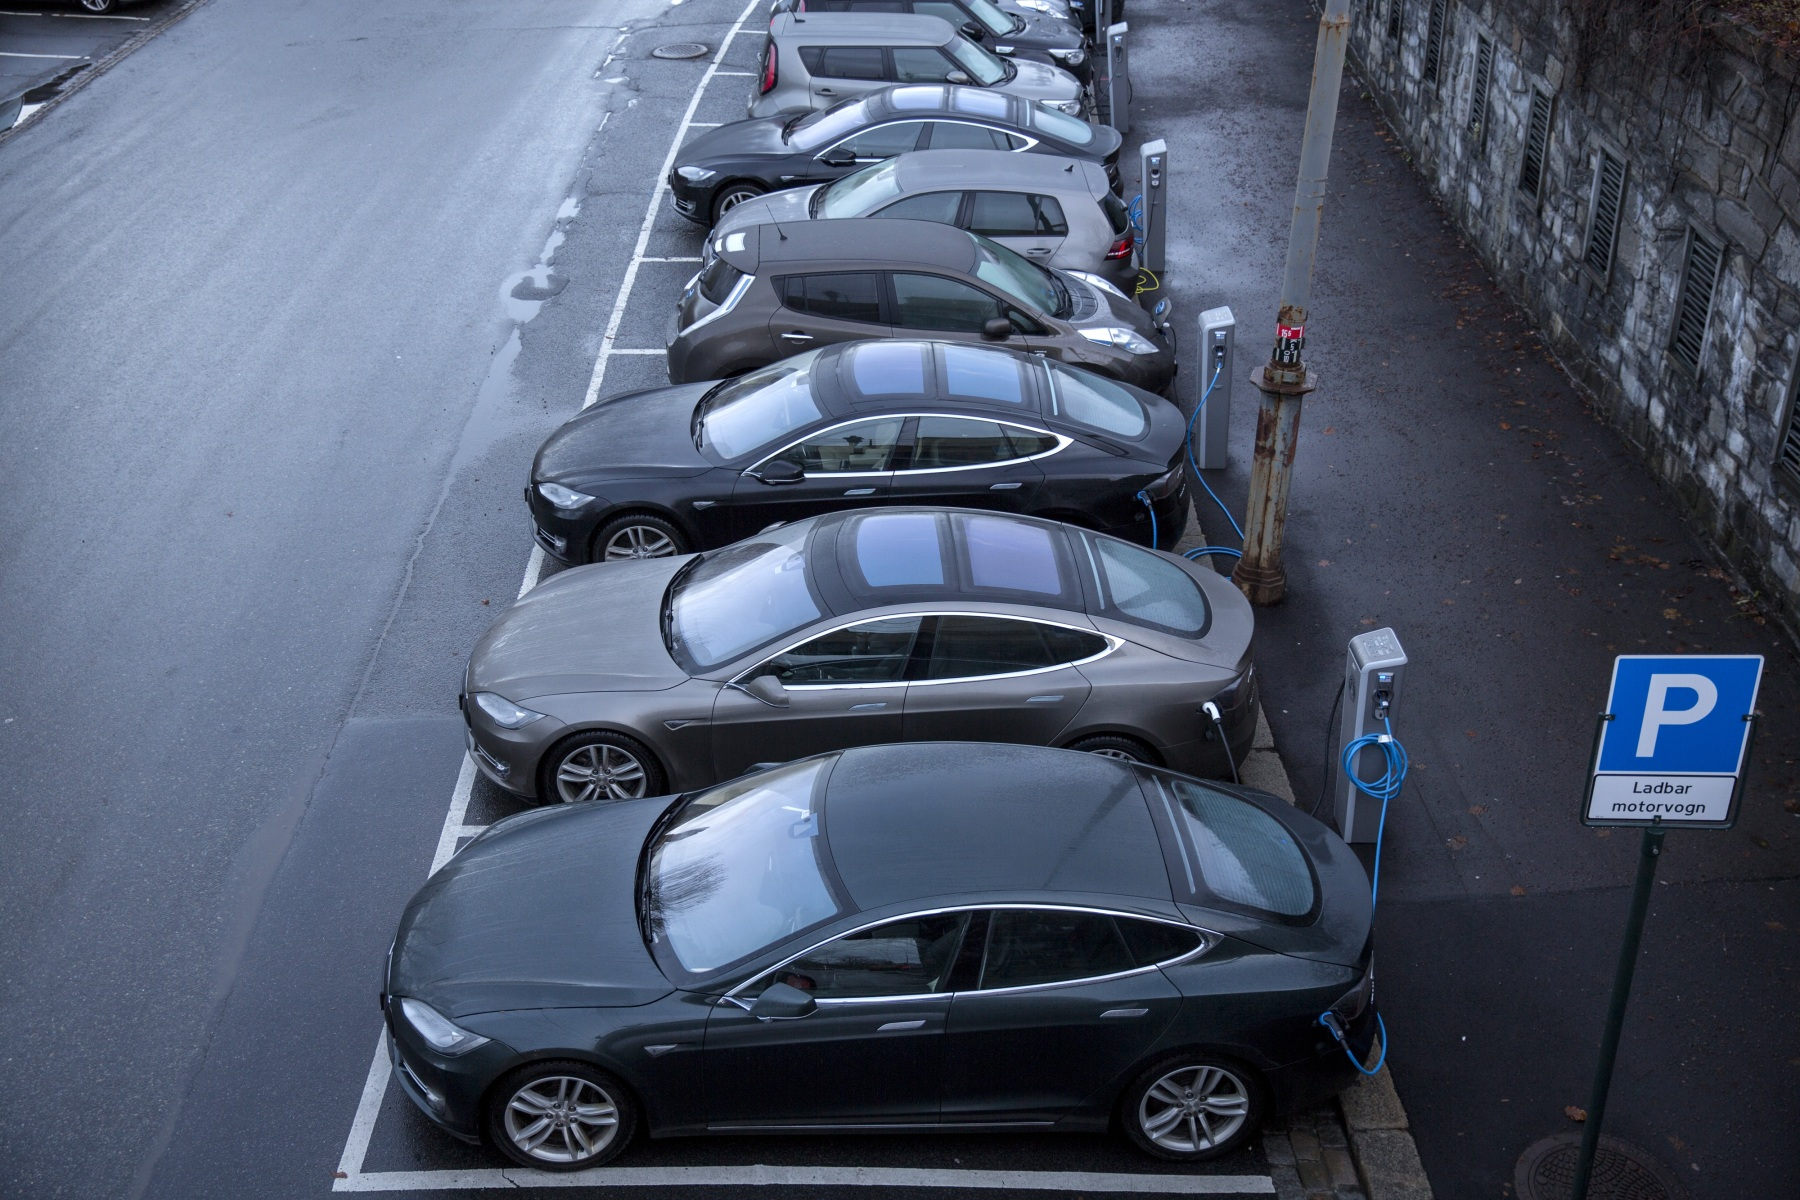 785e746f18 Electric vehicles (EV) sit parked at charging stations at Kongens gate near  Akershus festning